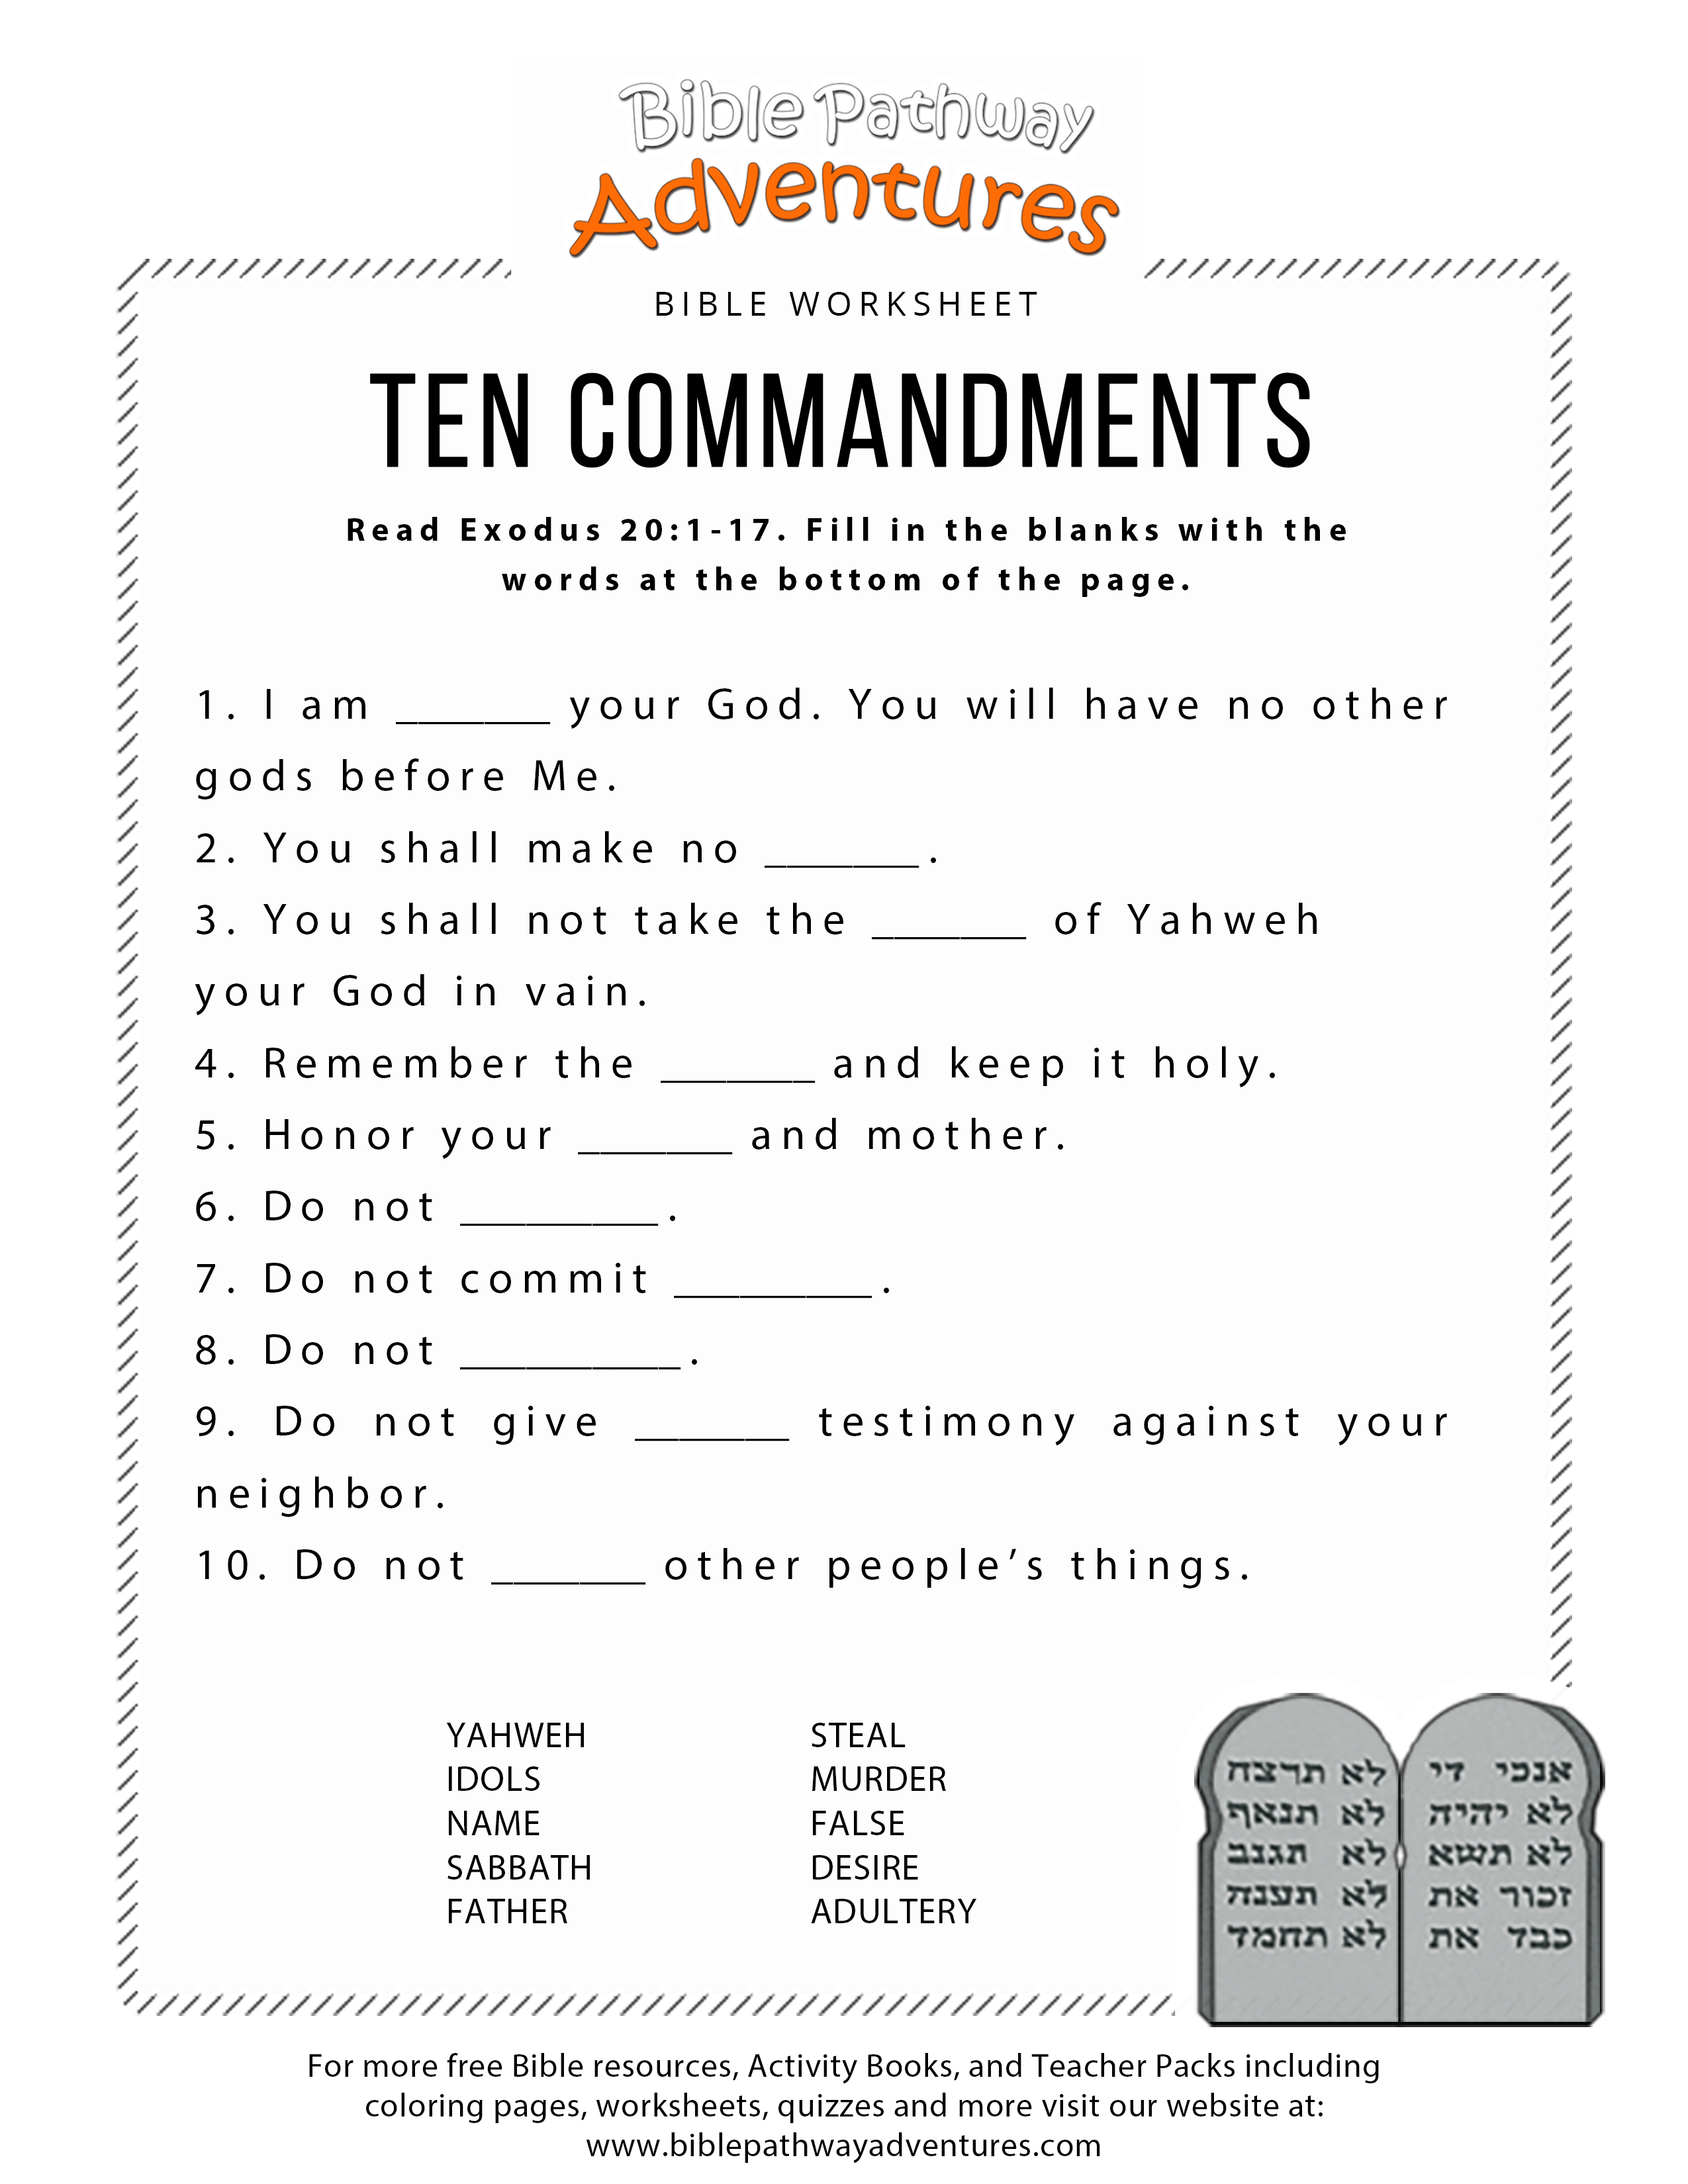 Ten Commandments Worksheet For Kids | Worksheets For Psr | Bible - Free Printable Bible Study Lessons For Adults